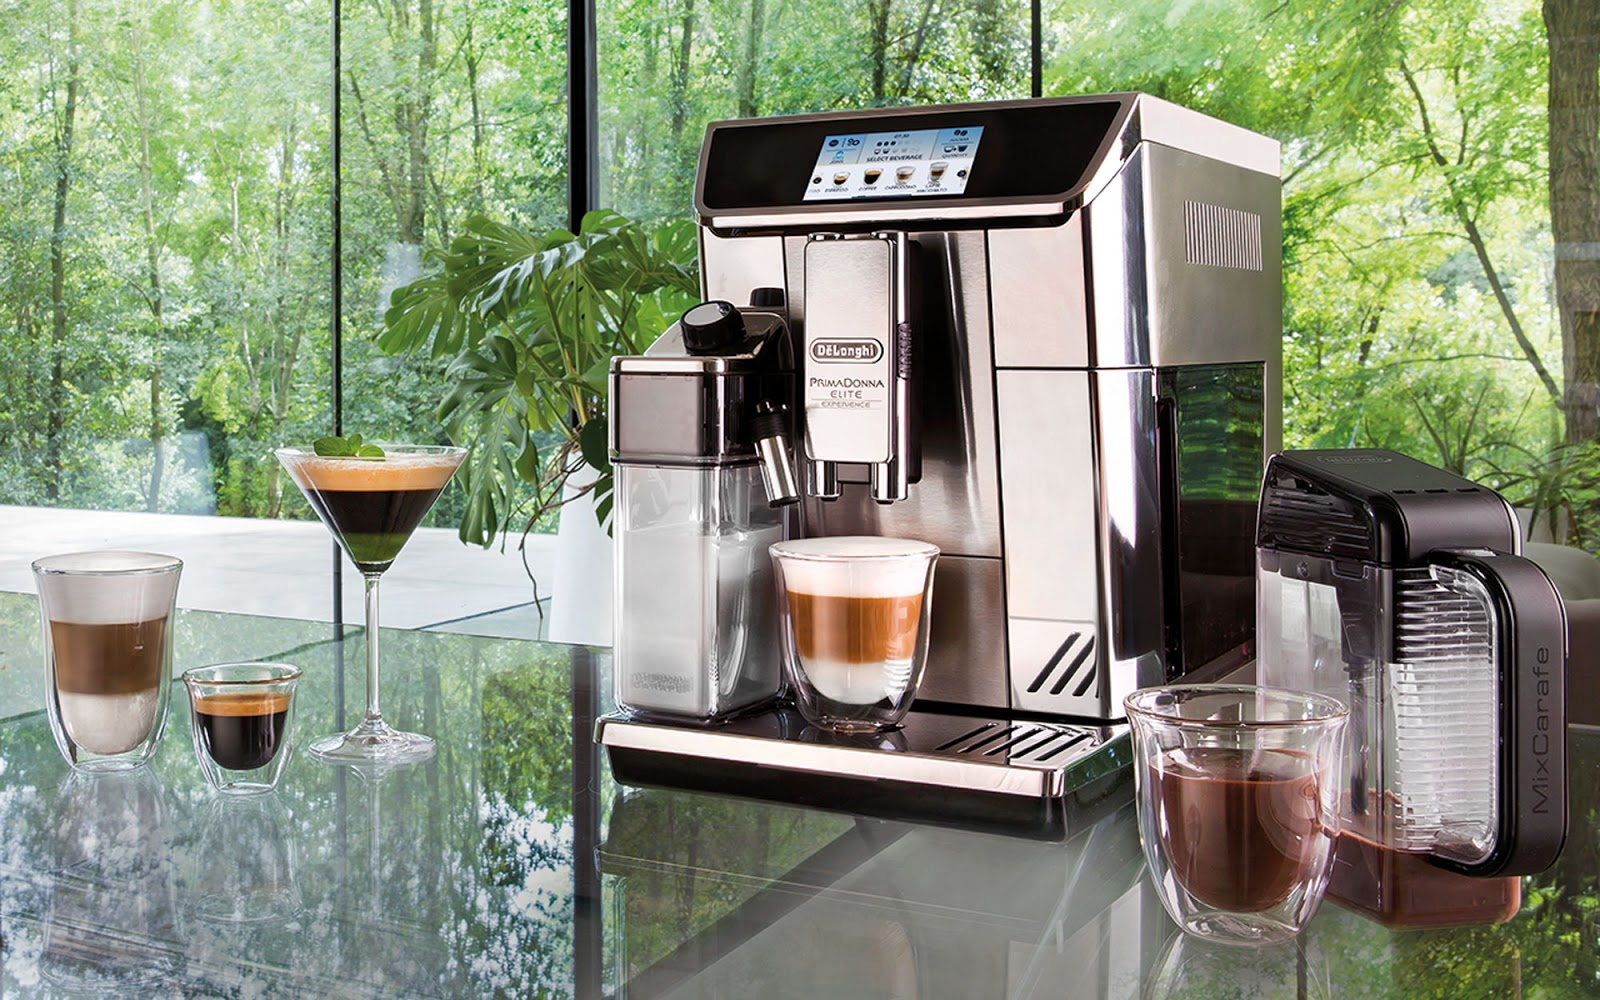 The De'Longhi Prima Donna Elite coffee machine